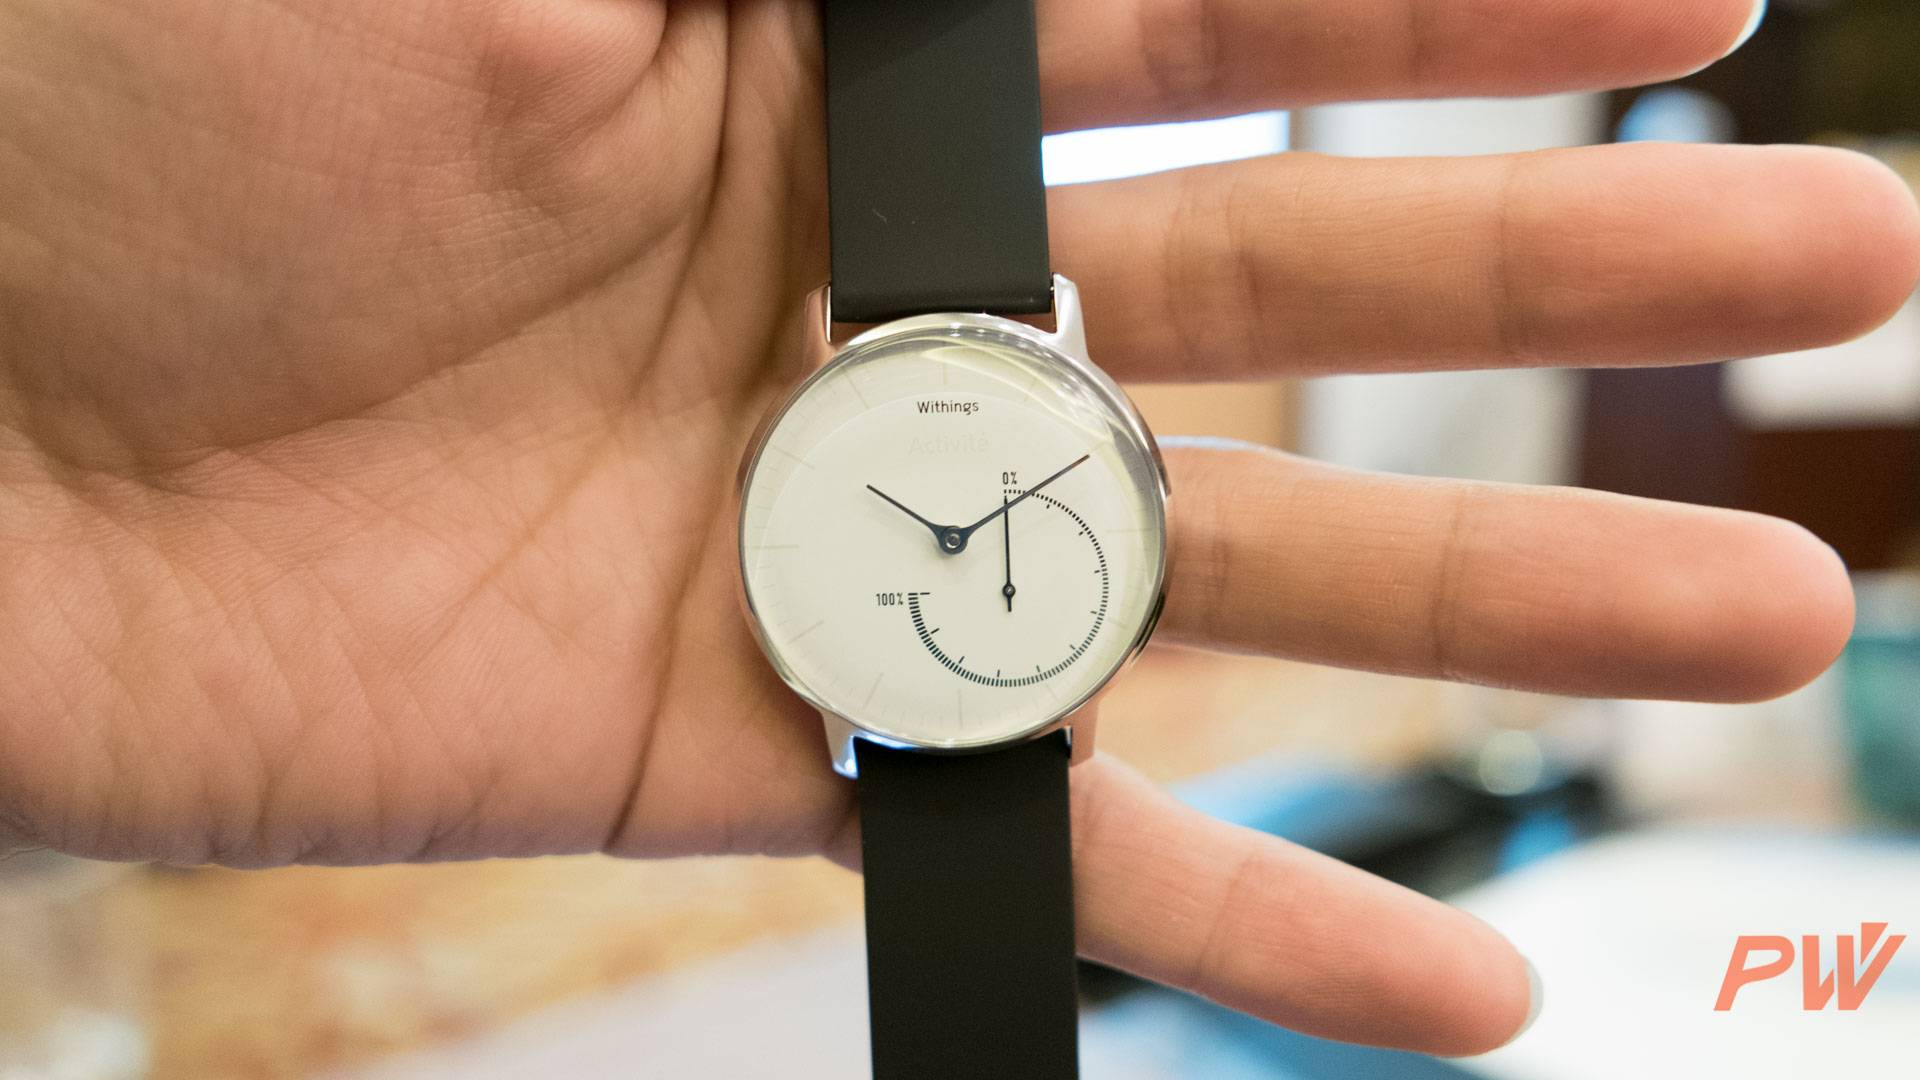 Withings Activite PingWest Photo By Hao Ying-6